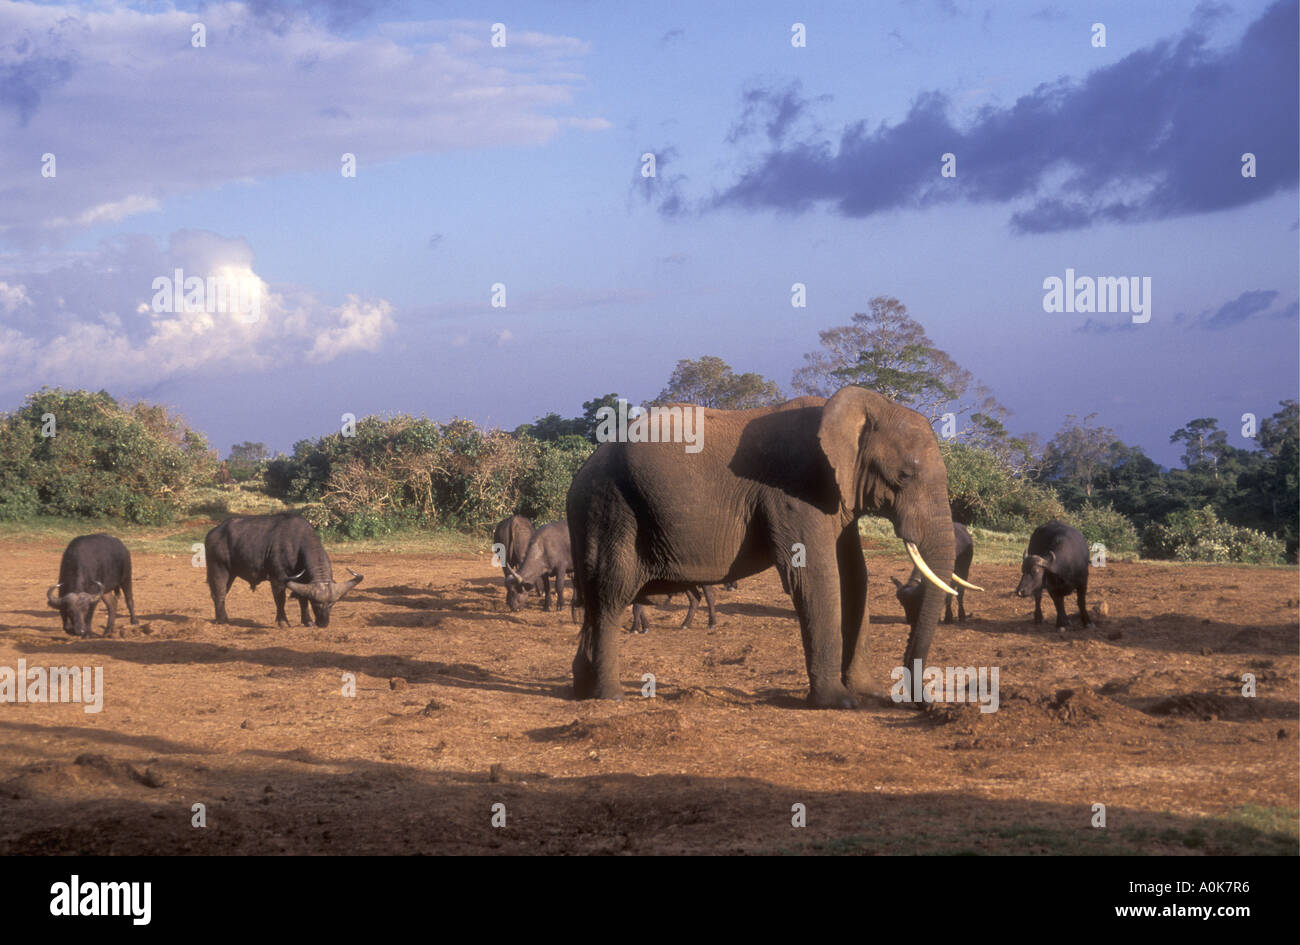 Elephant and buffalo at a salt lick in the Aberdares National Park Kenya East Africa - Stock Image